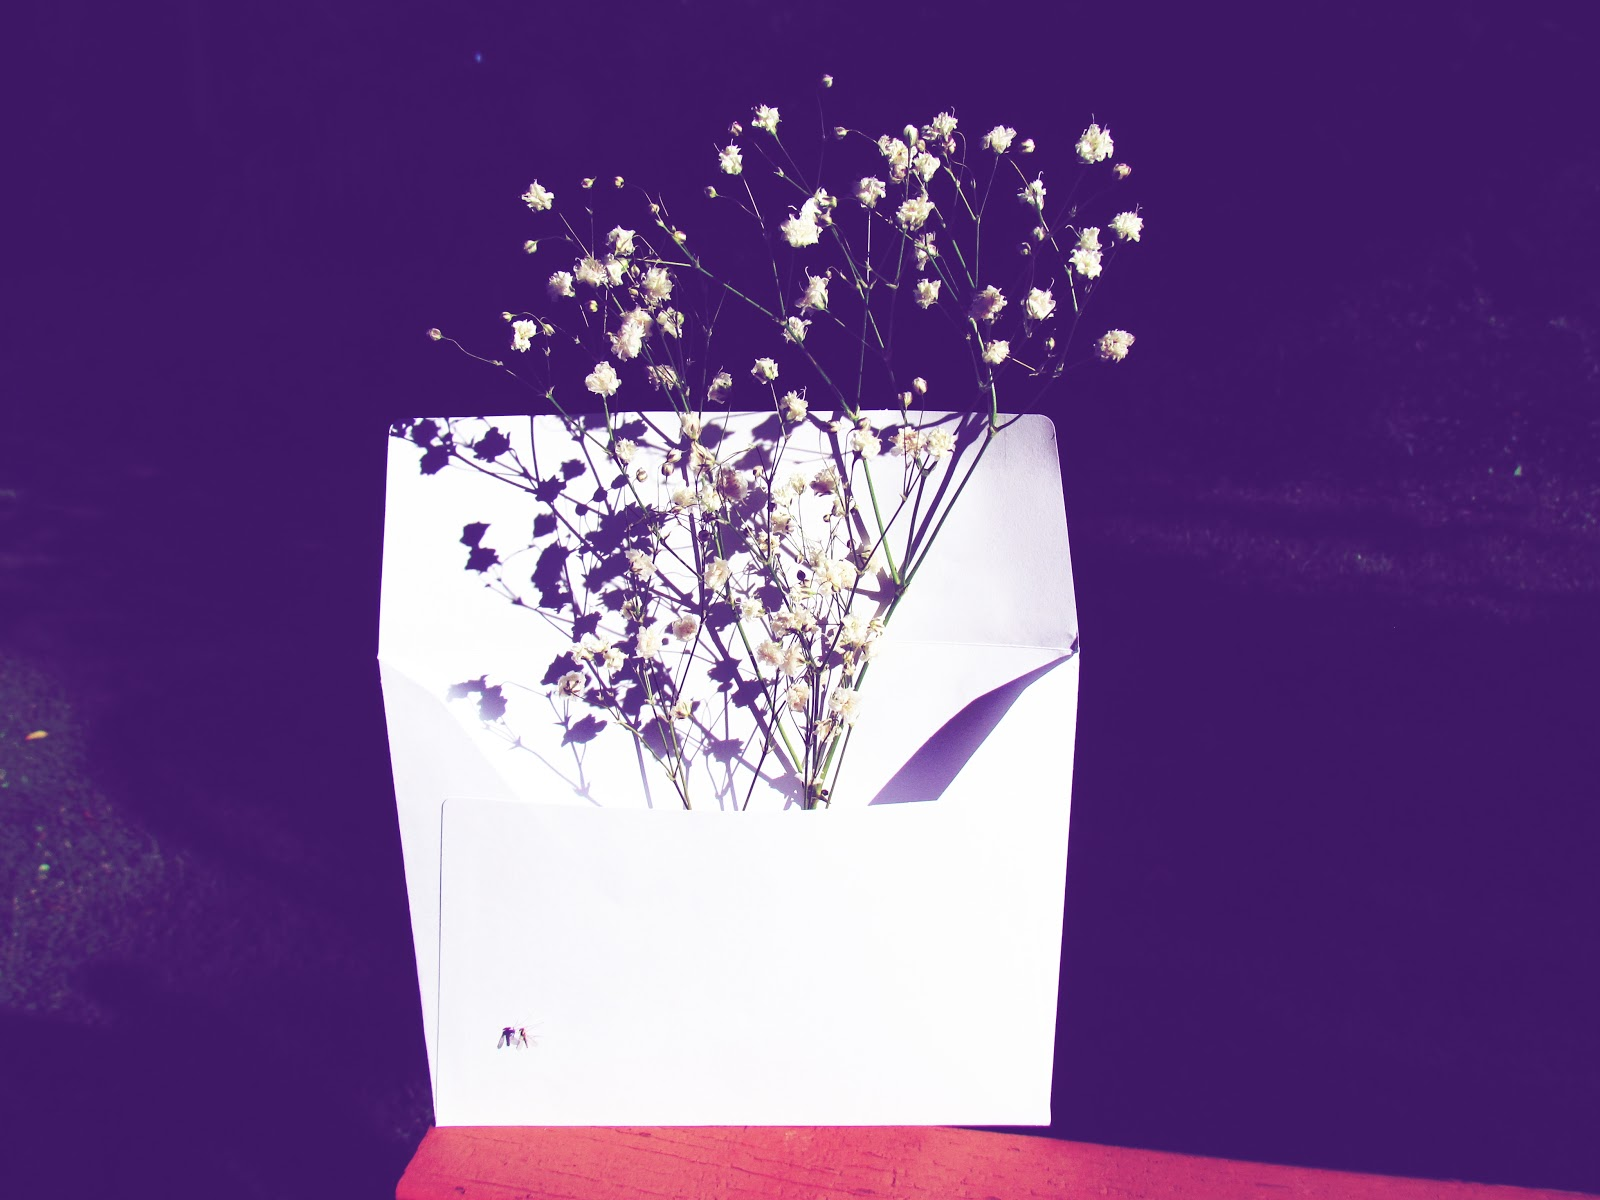 Gloom and Glow White Envelope, Dark Background, and White Baby's Breath Flower Branches